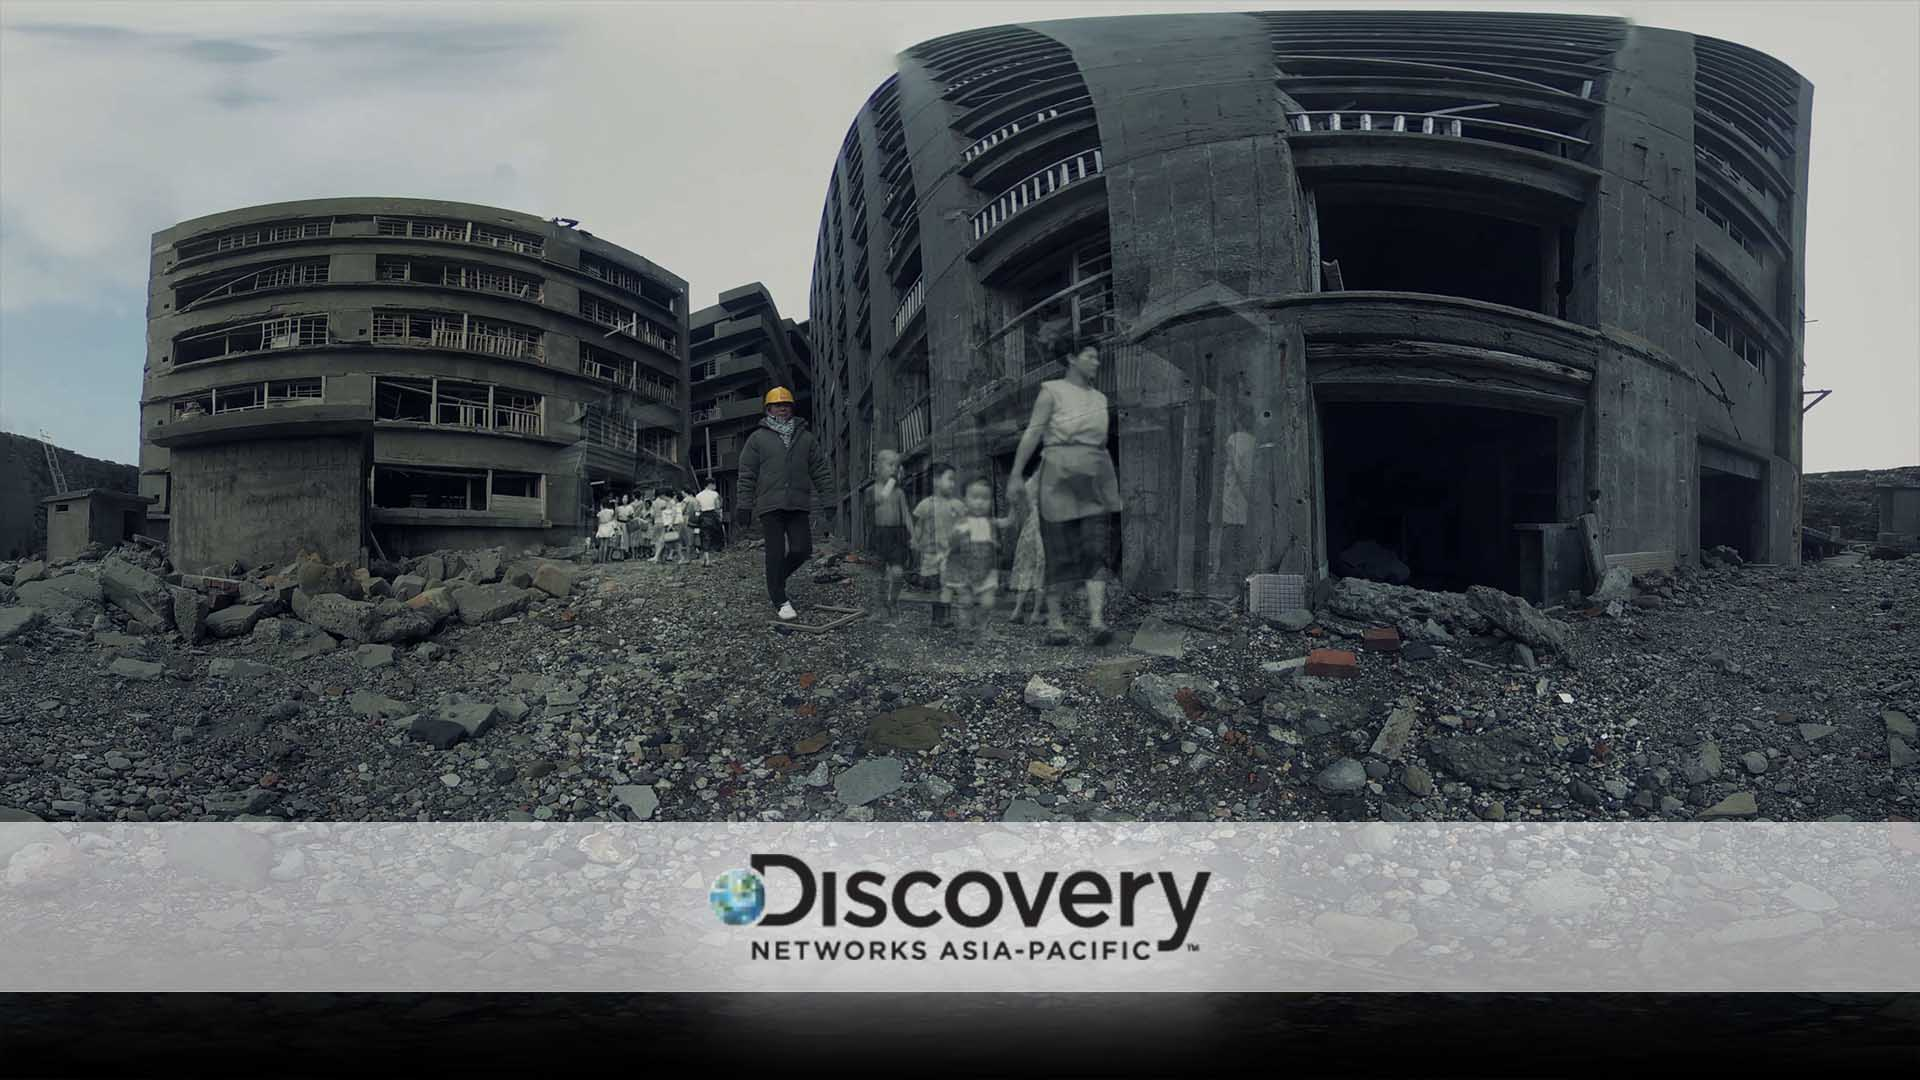 Discovery Networks VR